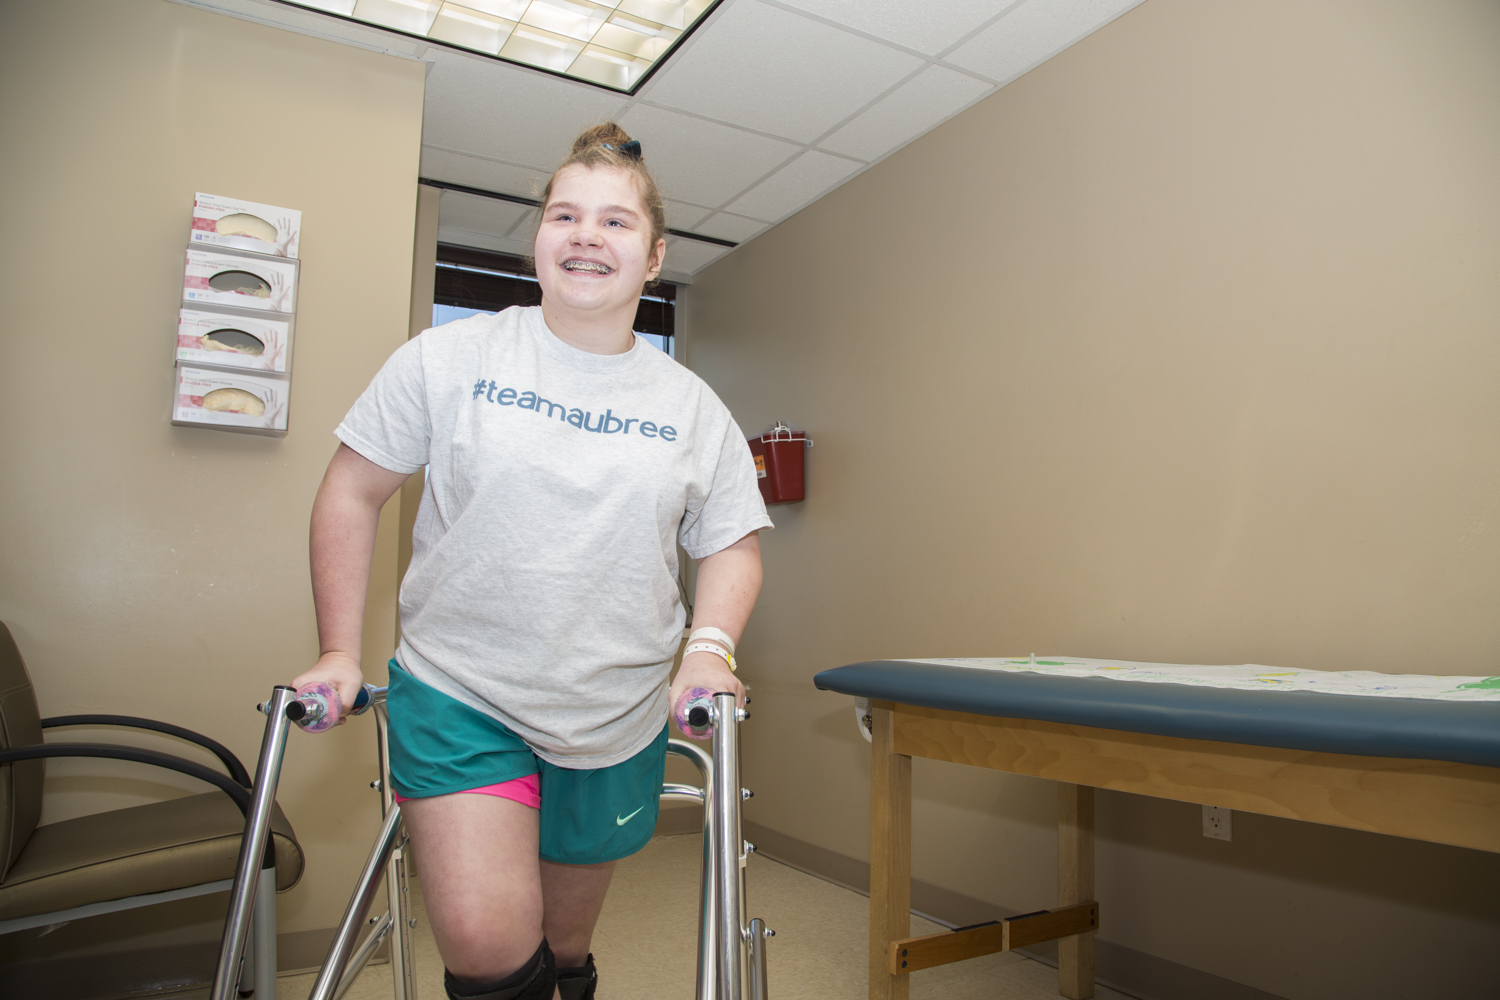 Teen diagnosed with cerebral palsy is beating conventional odds.